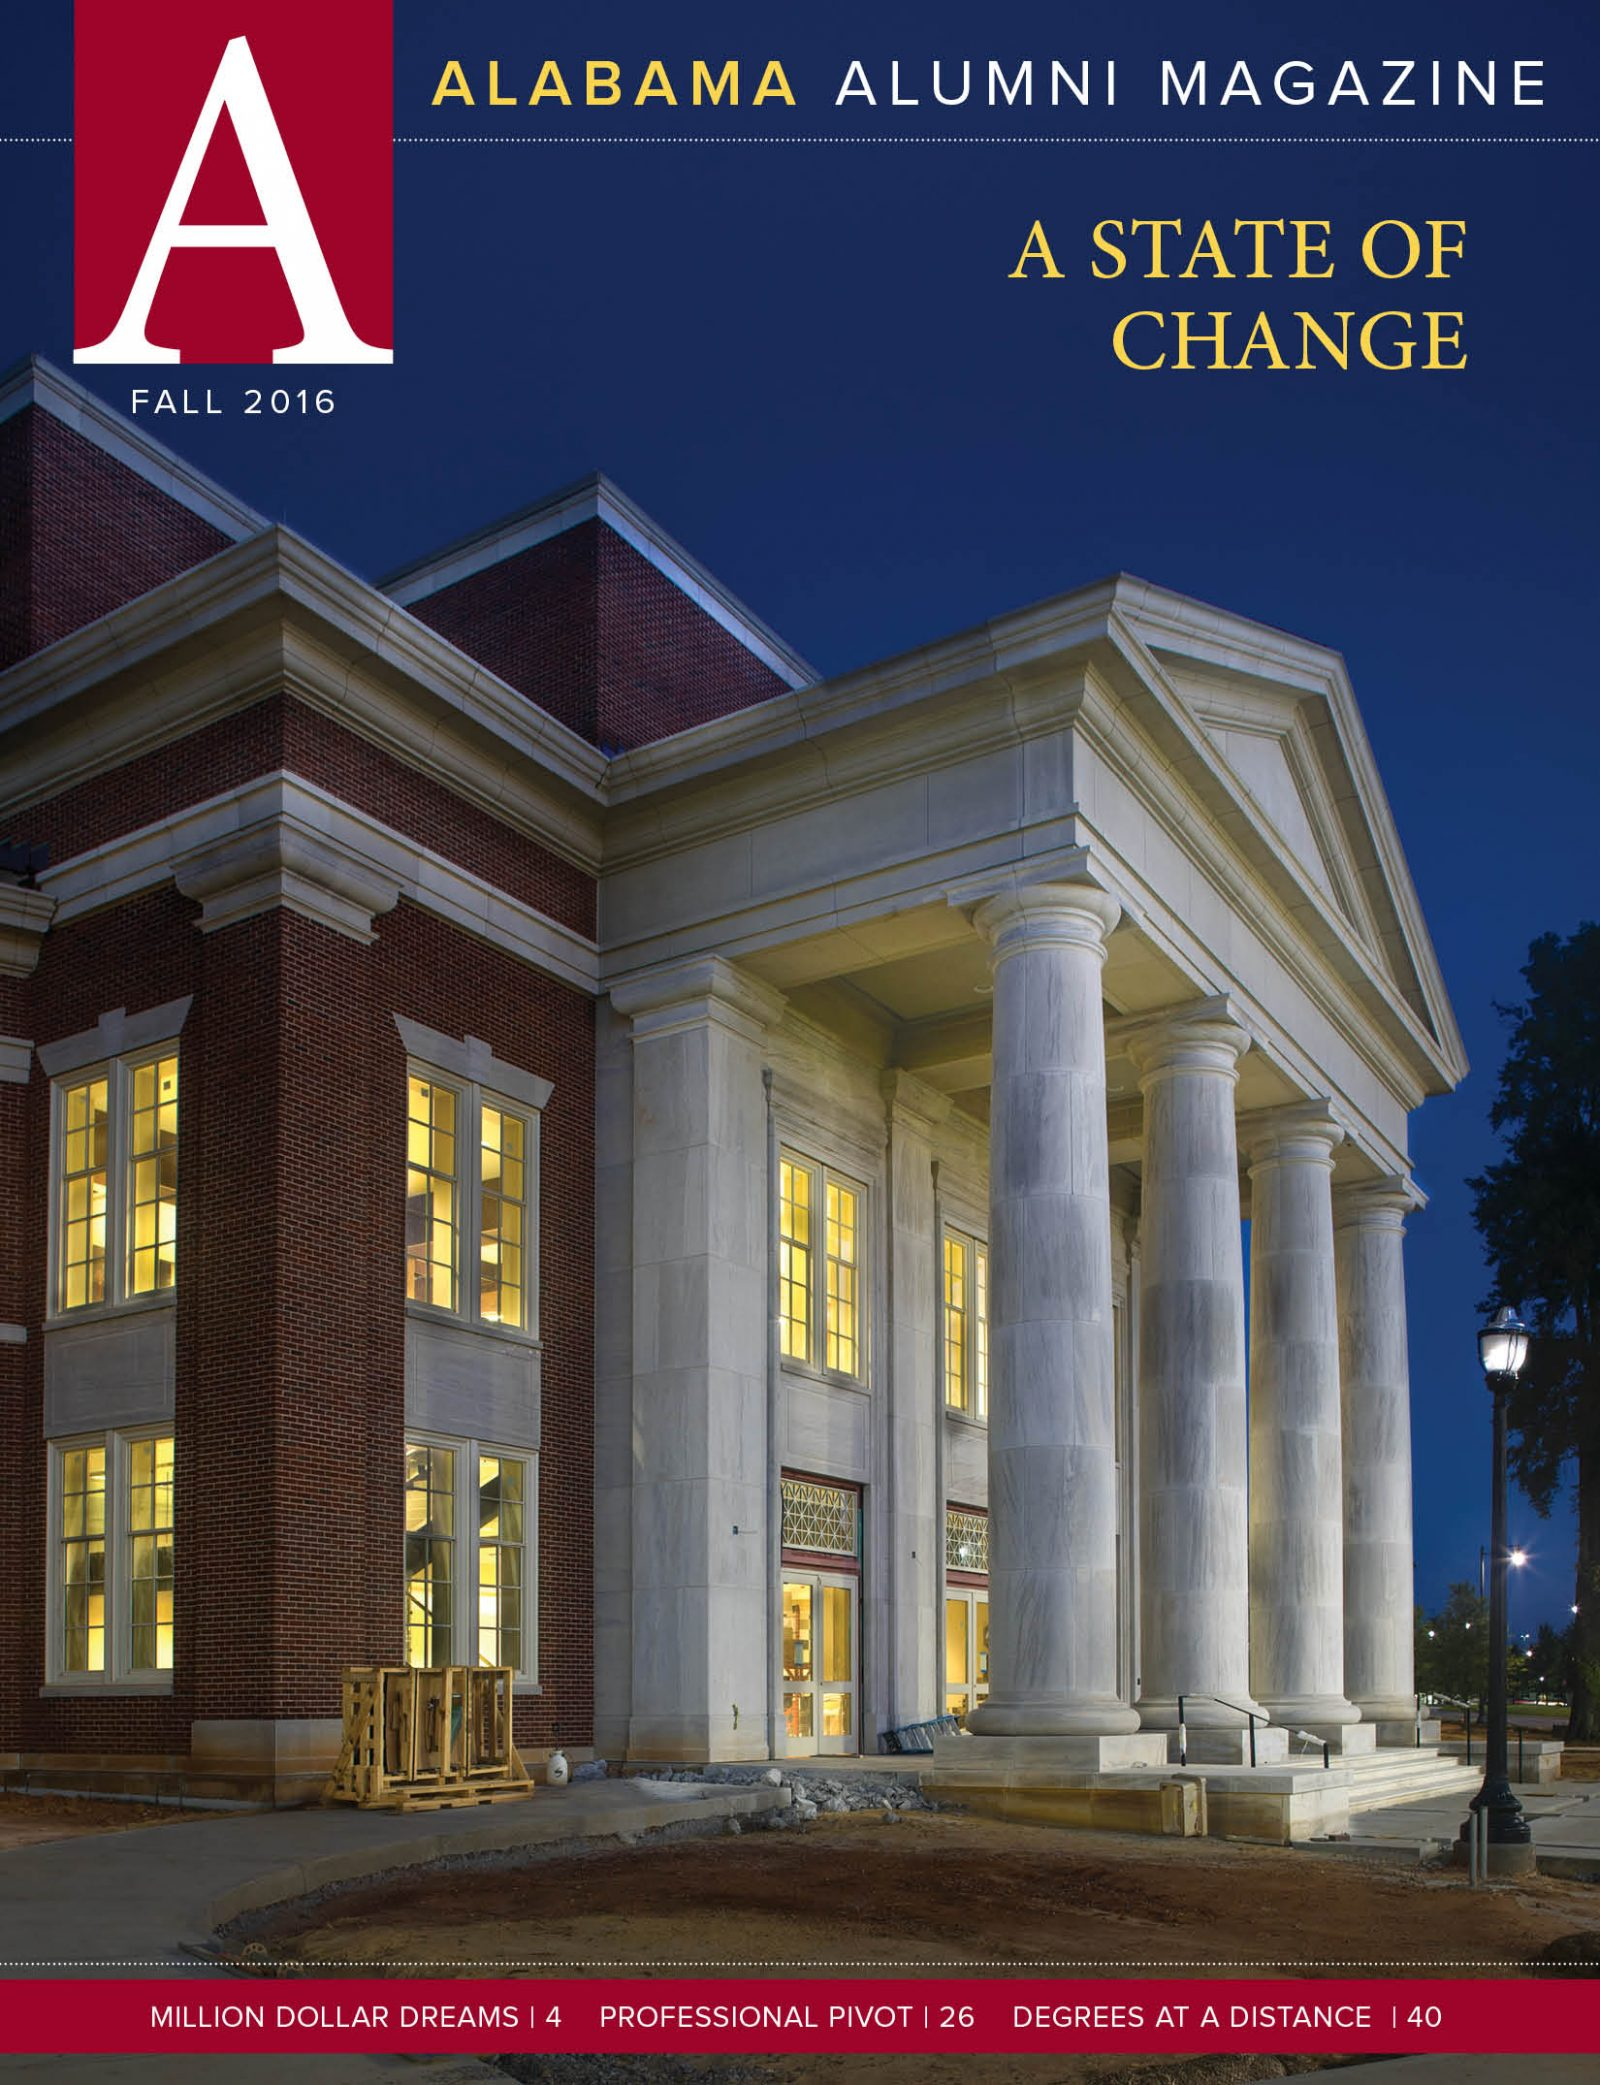 Alumni Magazine Fall 2016 Cover